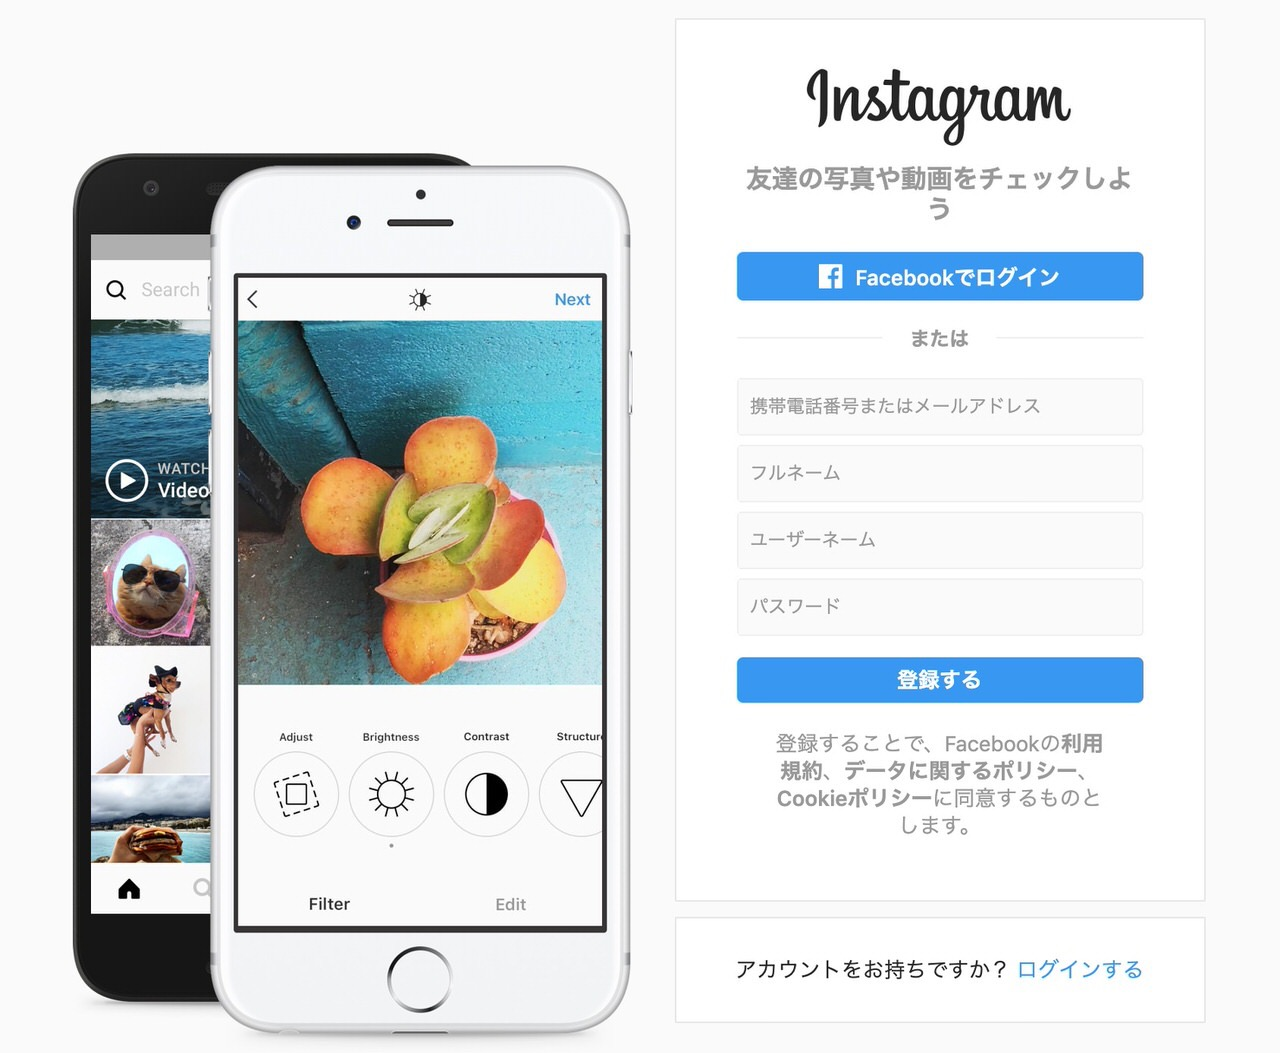 Instagramが「Instagram from Facebook」に名称変更へ